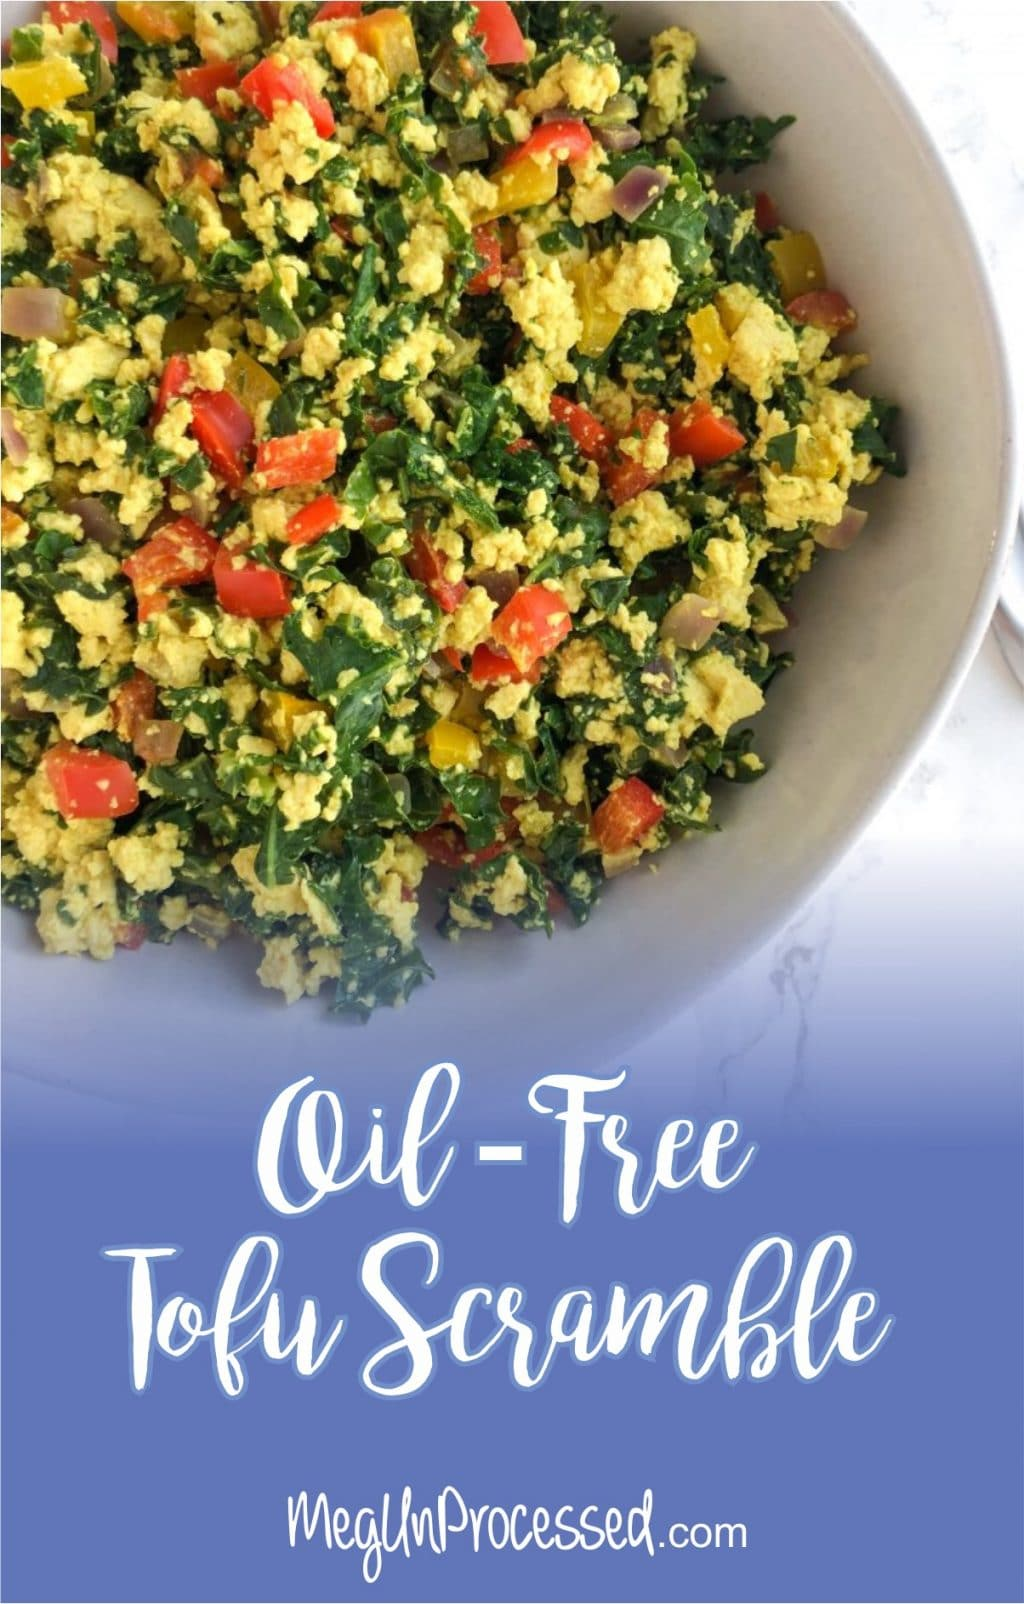 This easy dish is packed with veggies, plant-based protein and essential vitamins for nourishing meal. Tofu scramble can be eaten on it's own, in a tortilla for tacos or even on a salad.